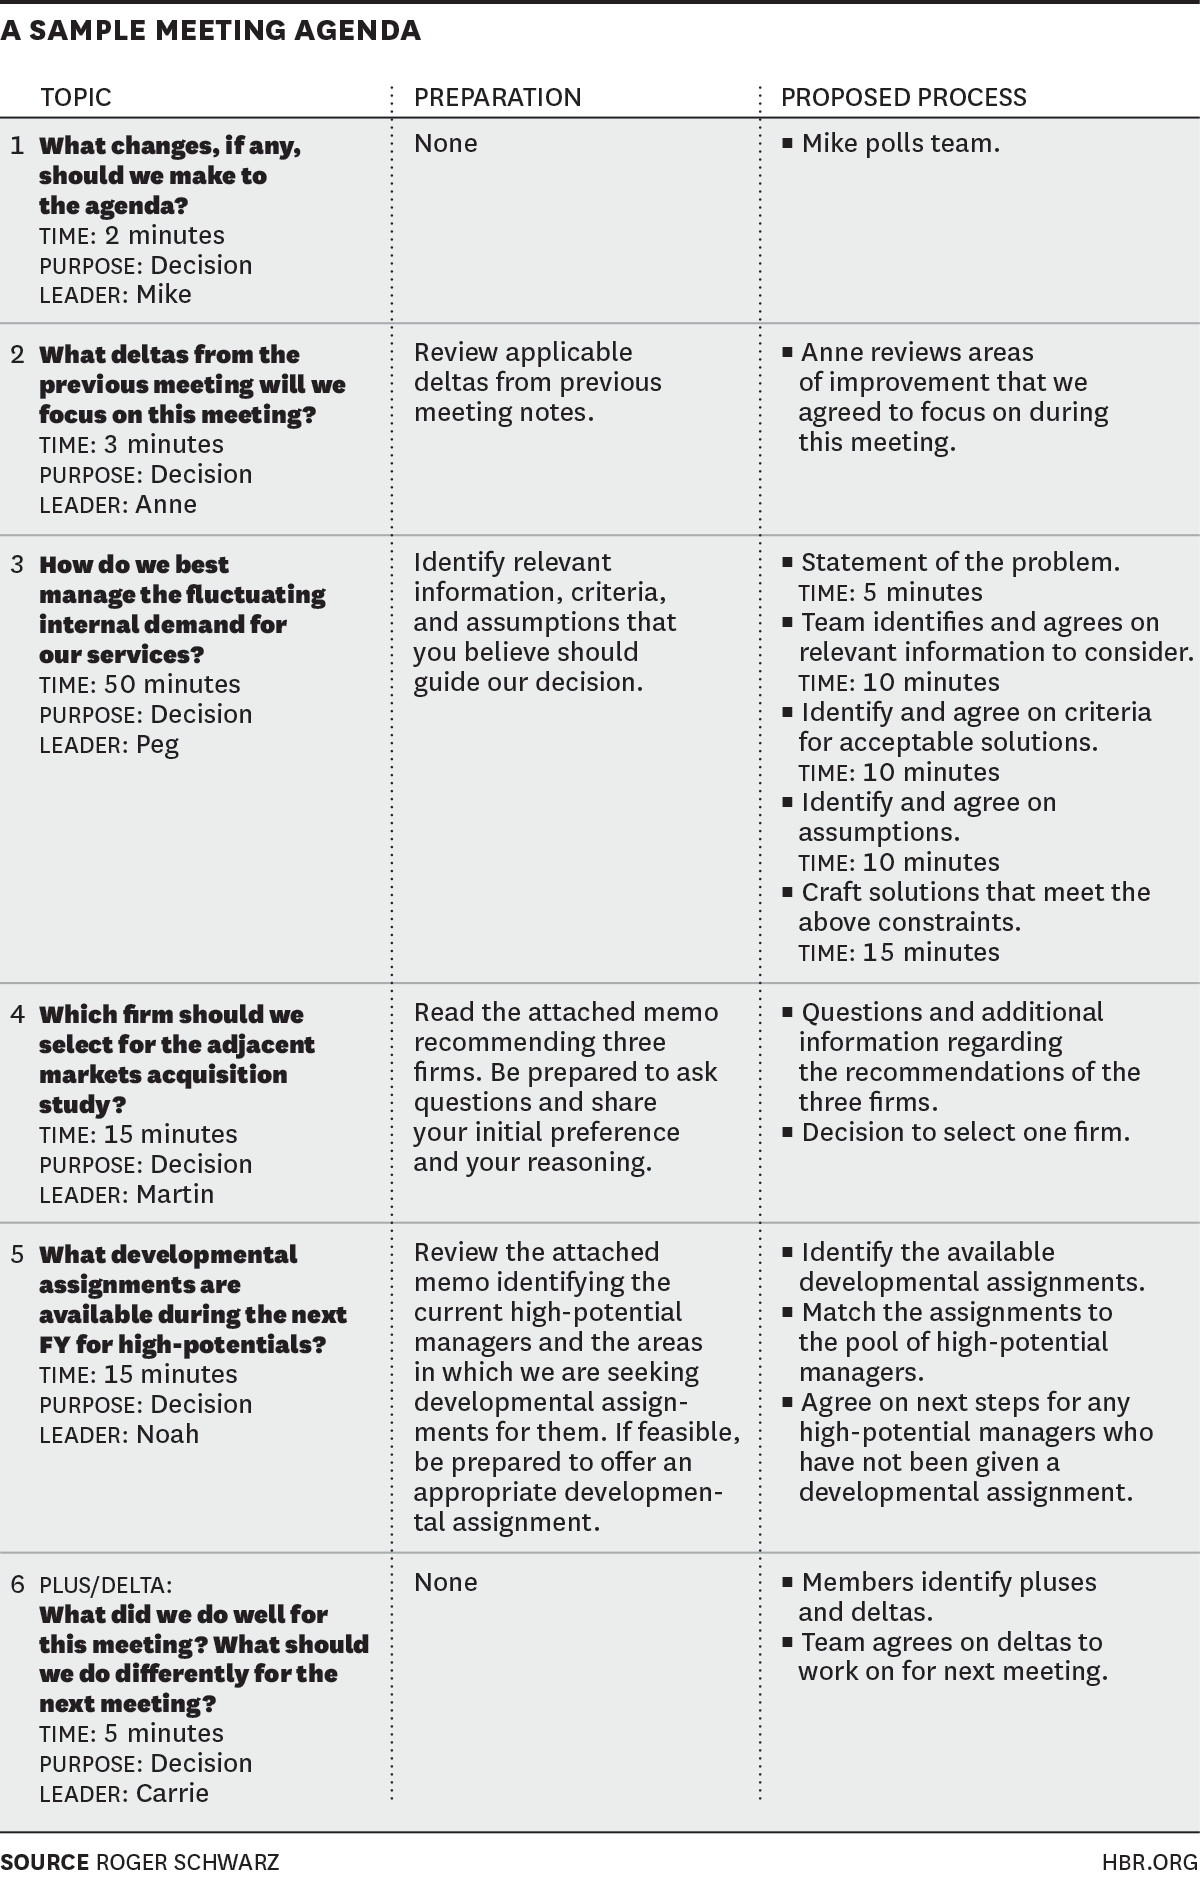 A Sample Meeting Agenda from the Harvard Business Review Blog